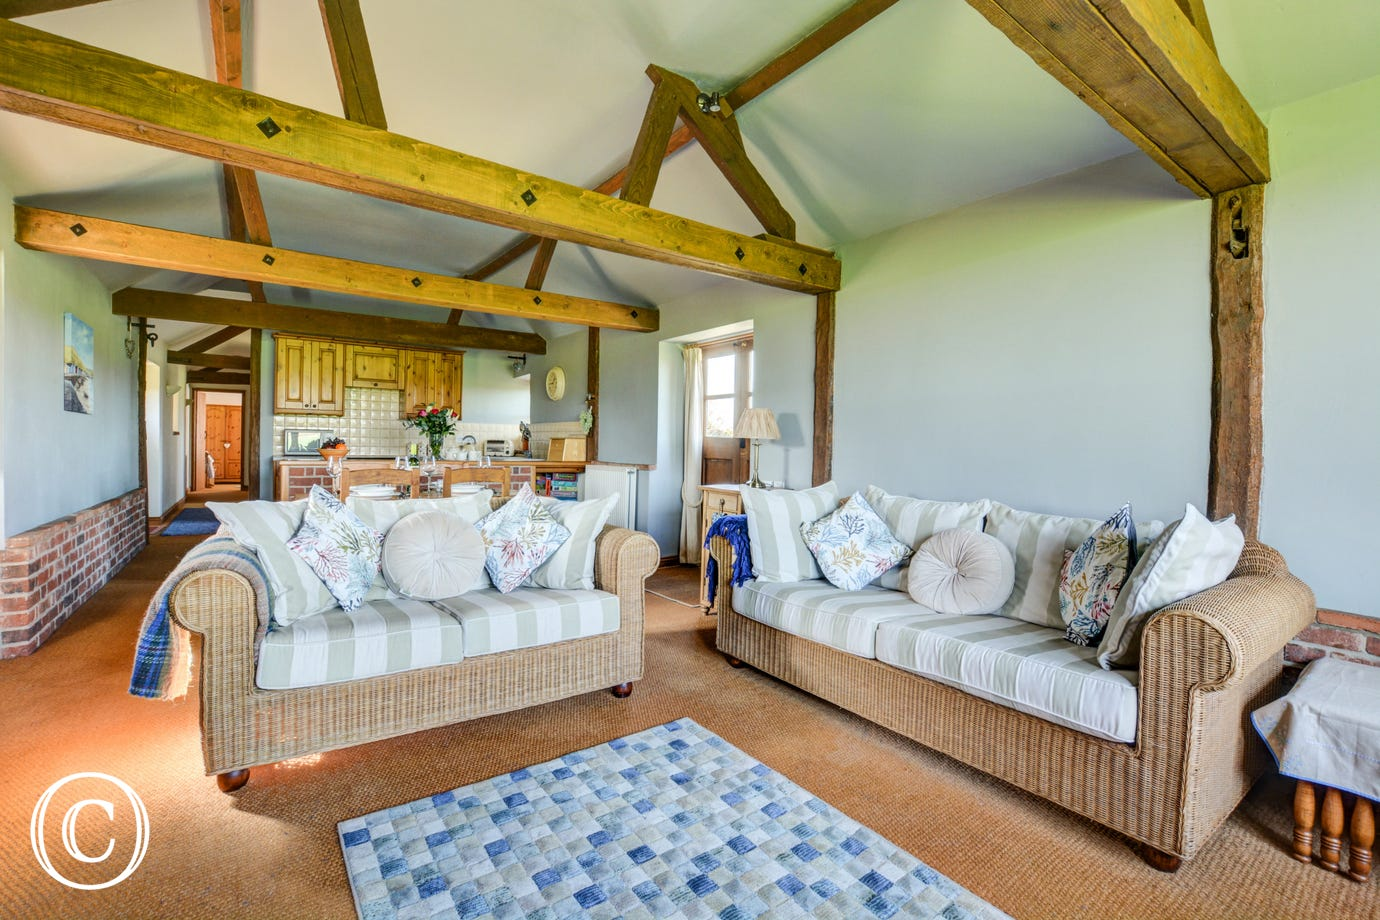 Pleasantly furnished with comfortable seating and lovely exposed beams